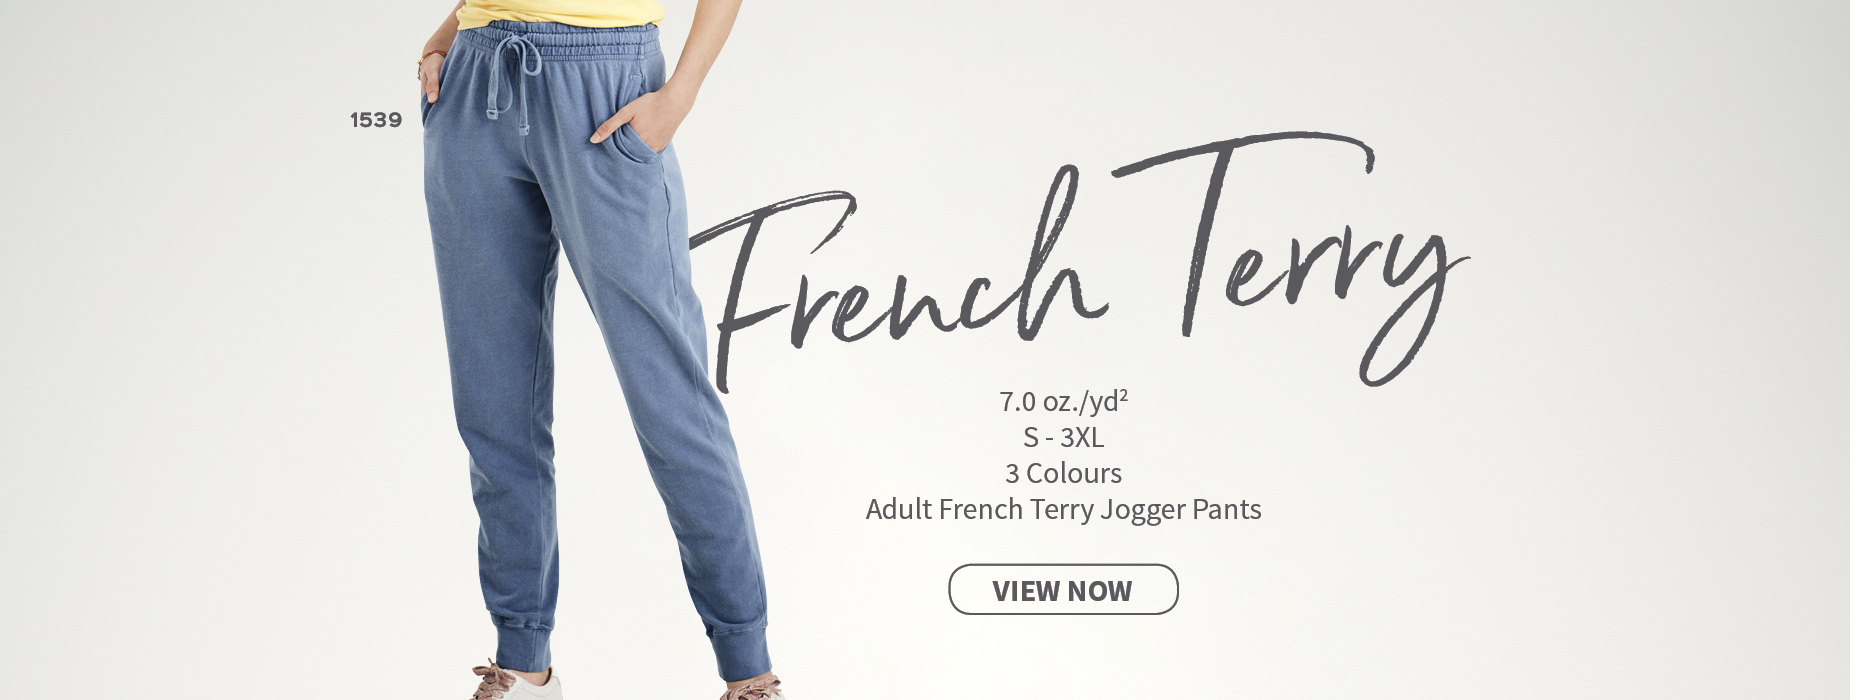 View now 1539 Adult French Terry Jogger Pants